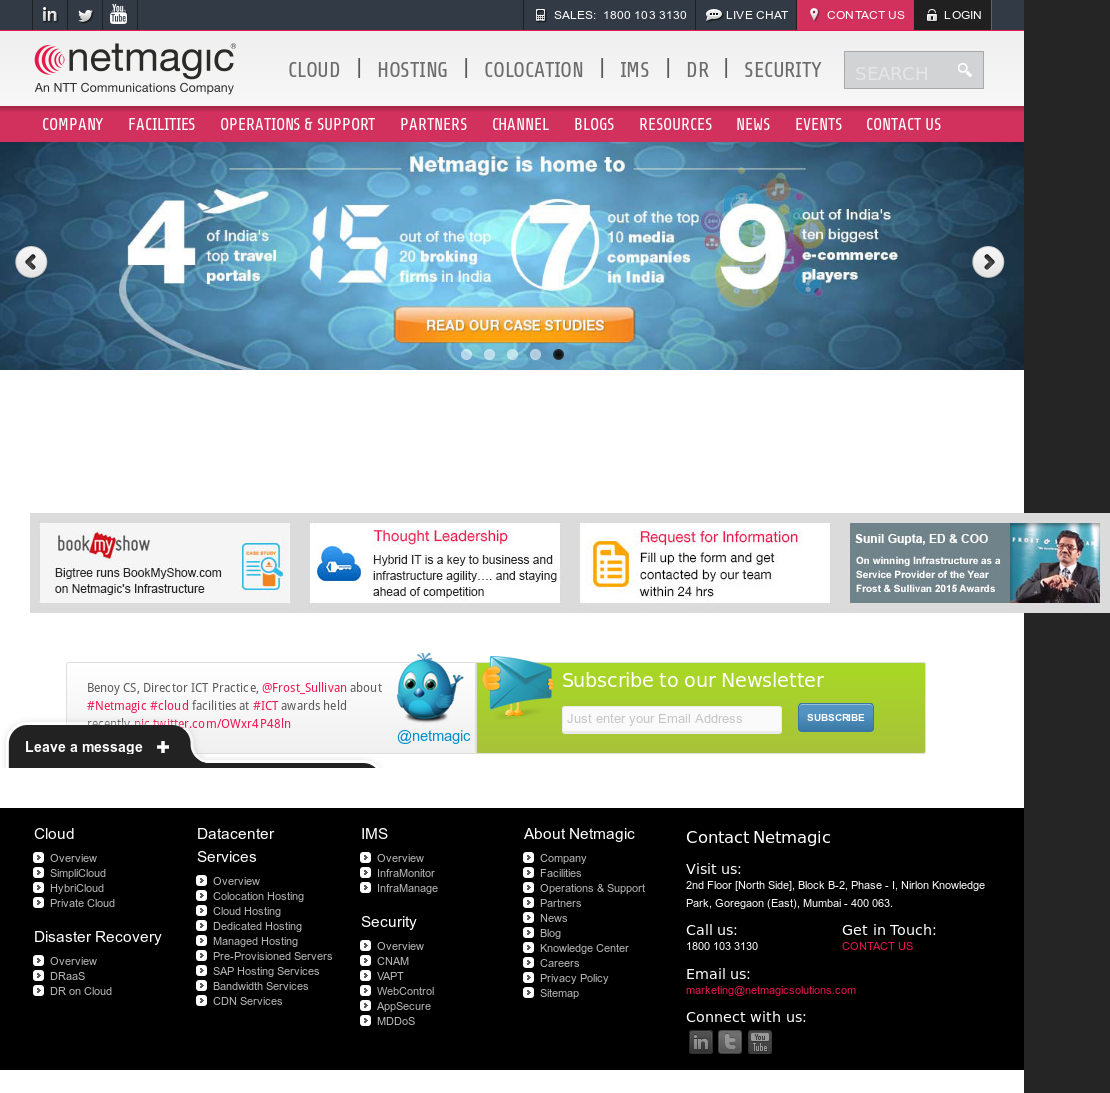 Netmagic Solutions Competitors, Revenue and Employees